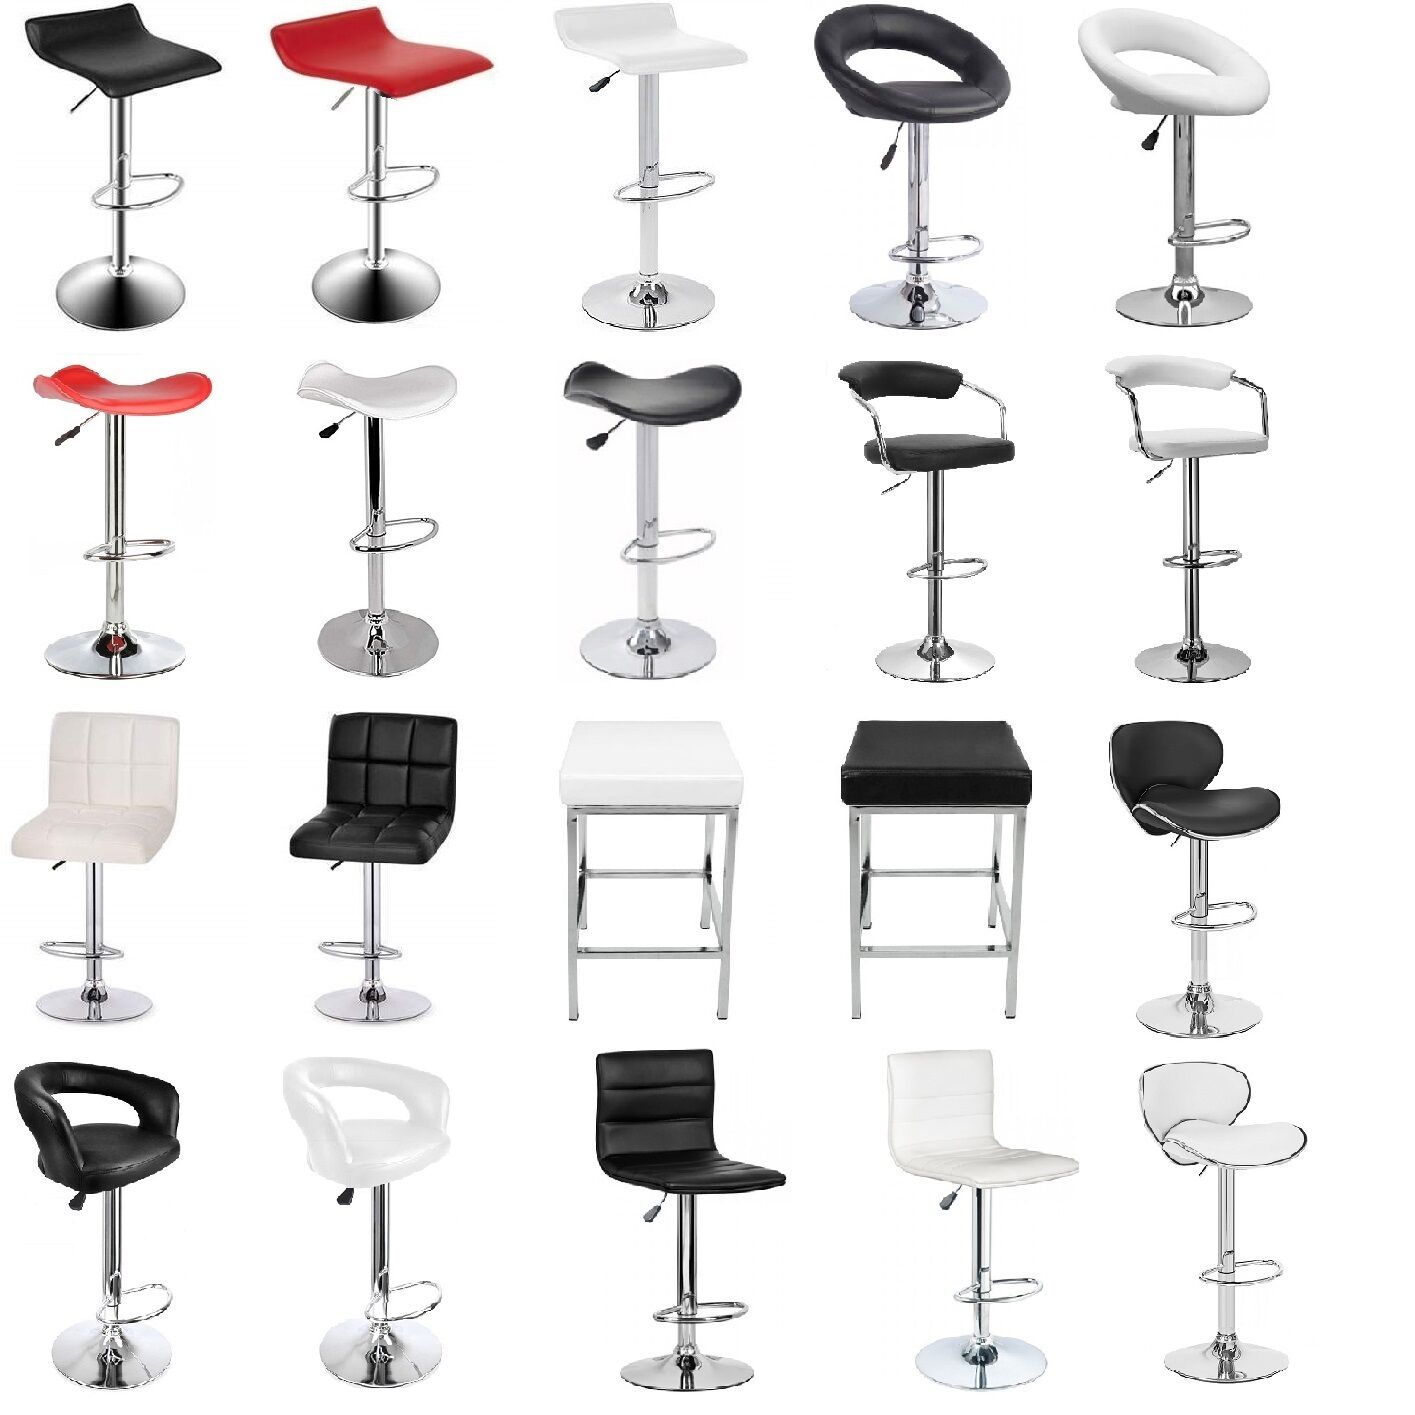 4x new pu pvc leather bar stool kitchen chair gas lift. Black Bedroom Furniture Sets. Home Design Ideas